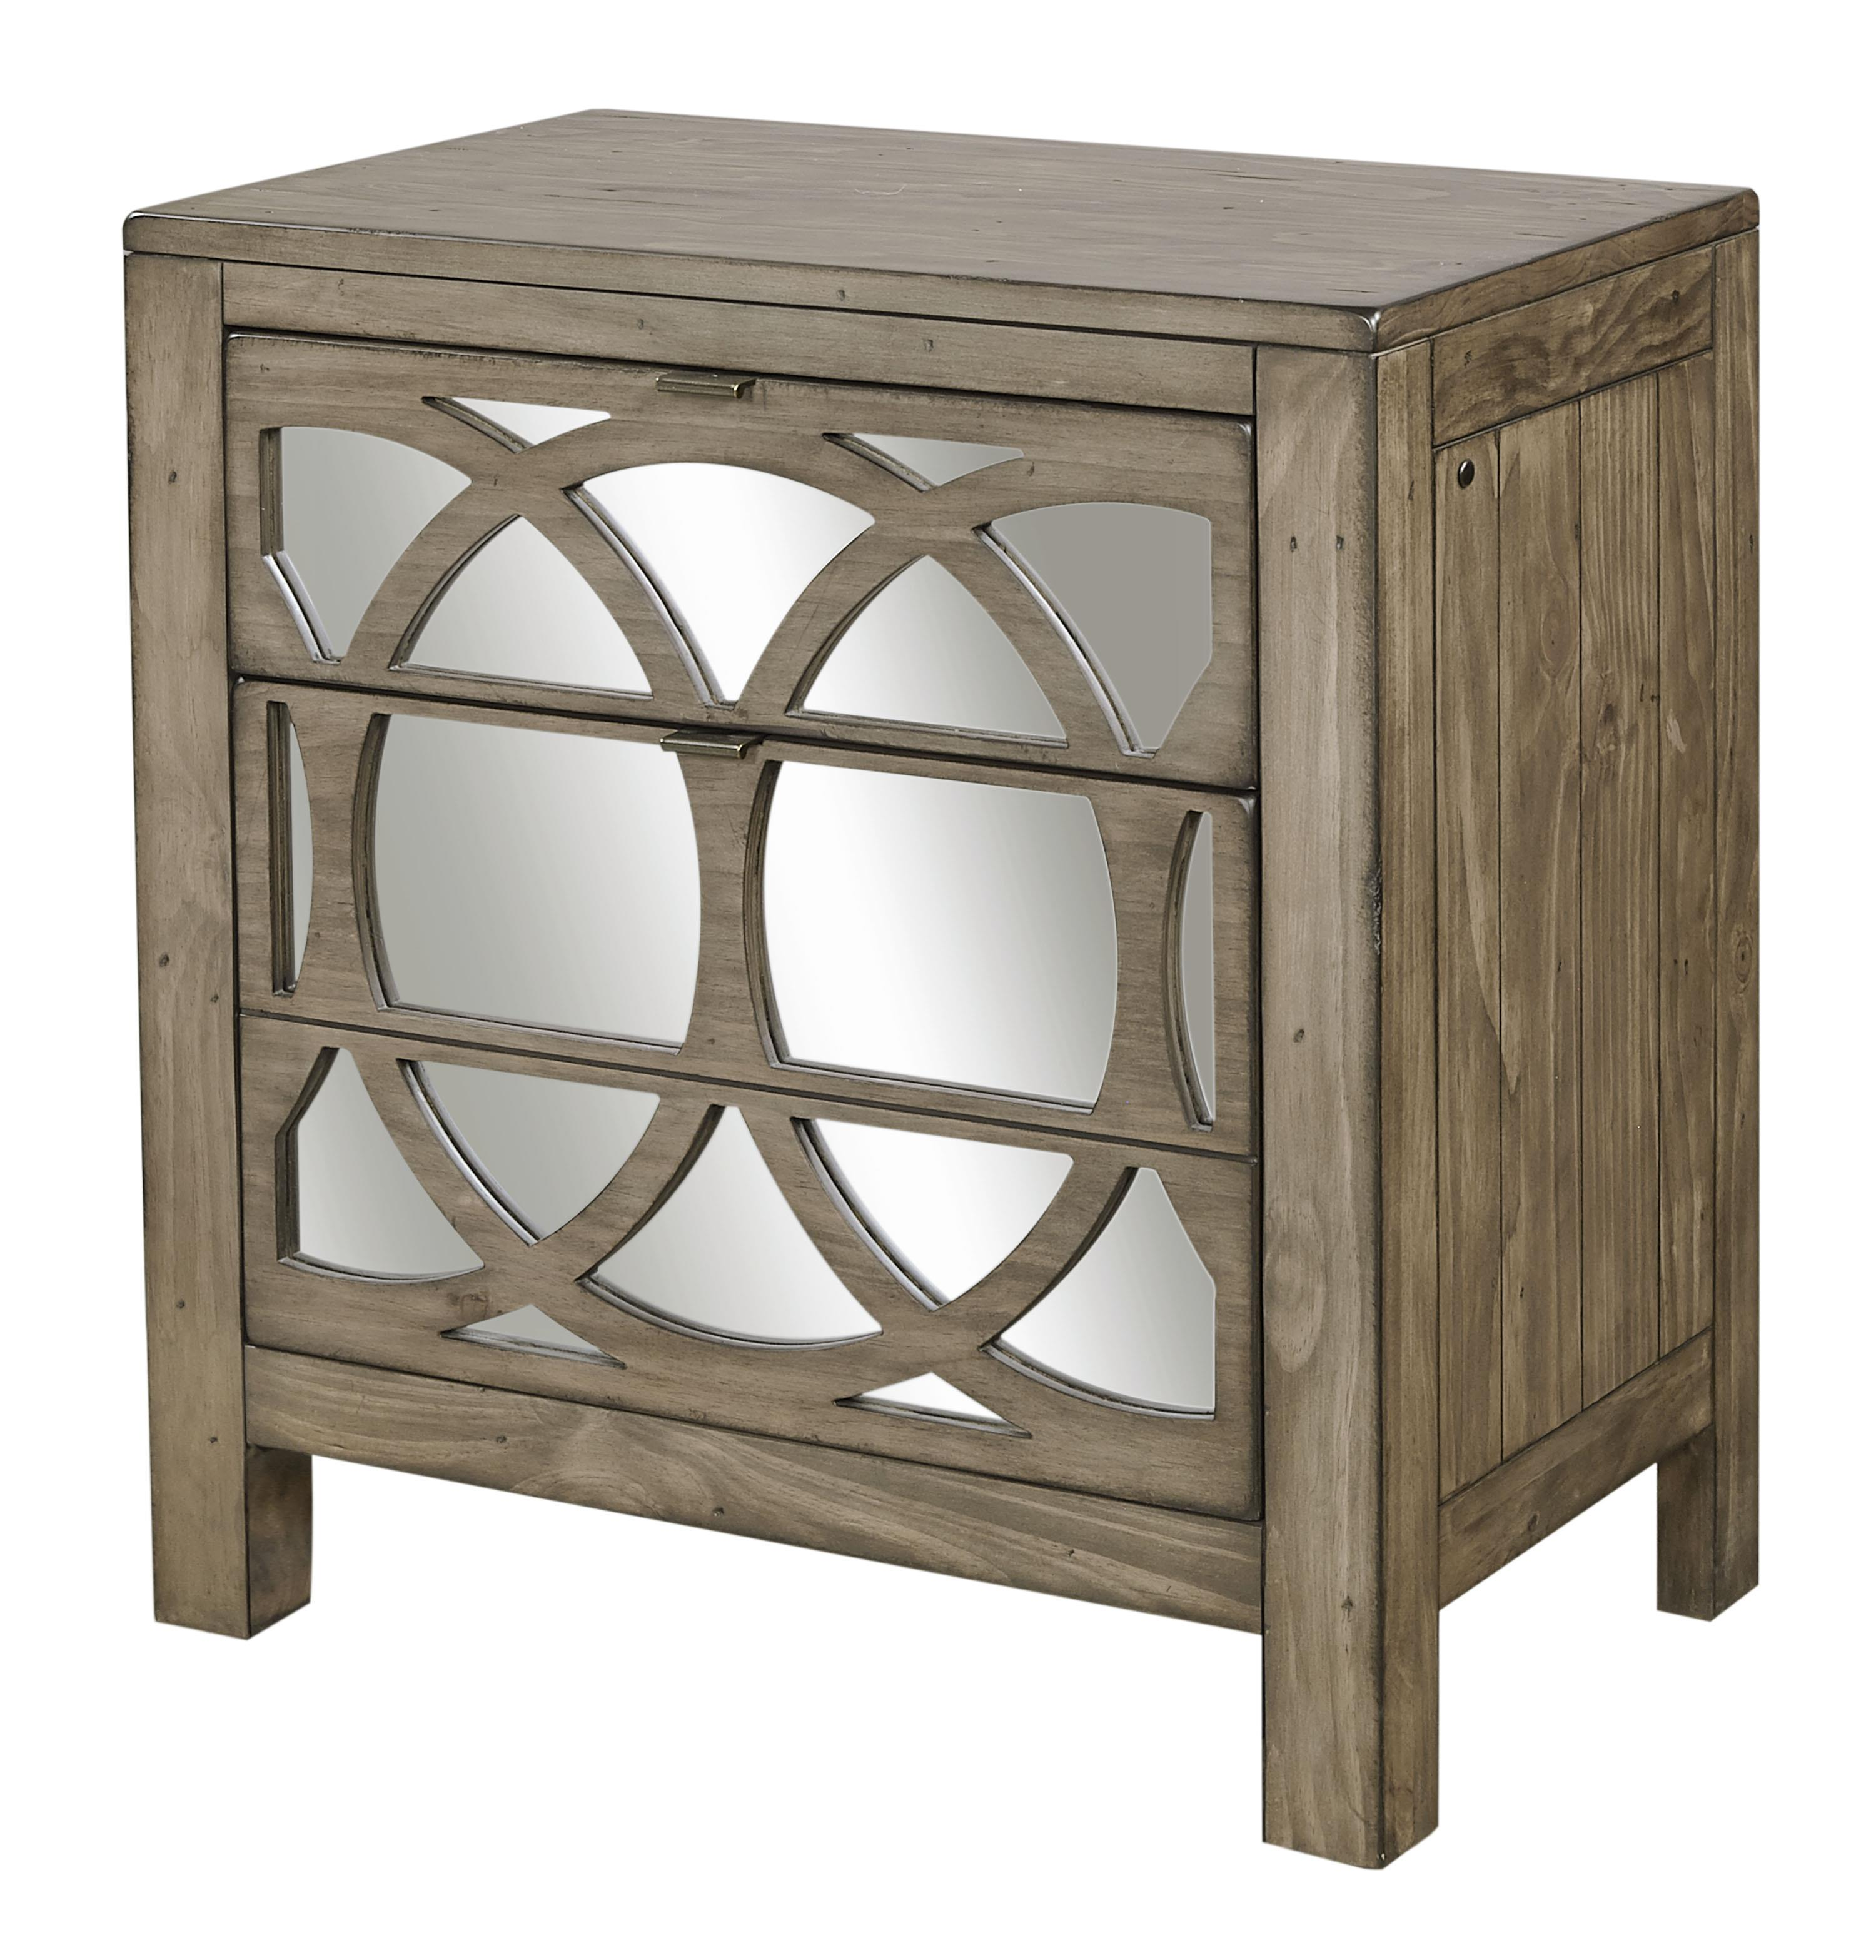 Aspenhome Tildon Liv360 Mirrored Nightstand with Two Drawers